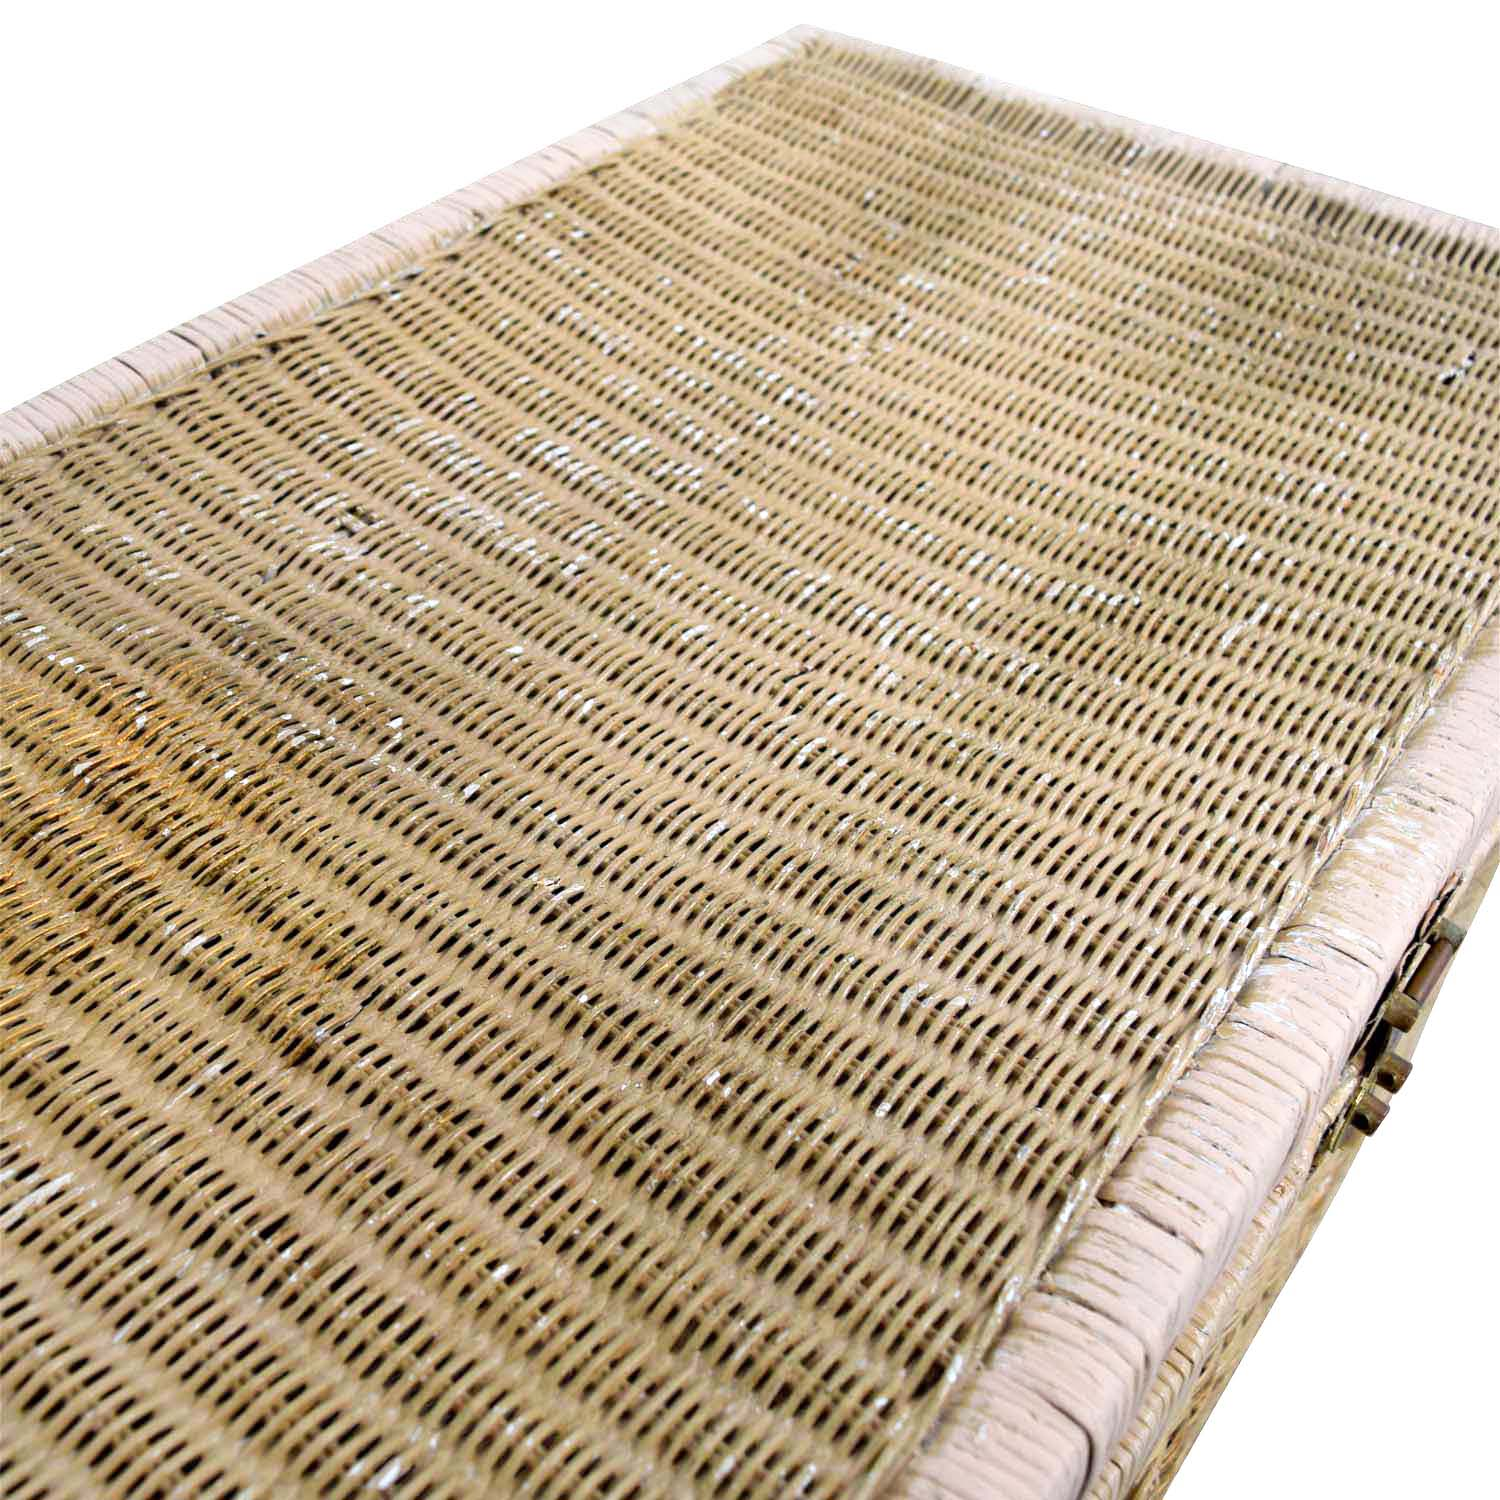 Pier 1 Imports Pier 1 Imports Natural Wicker Trunk used